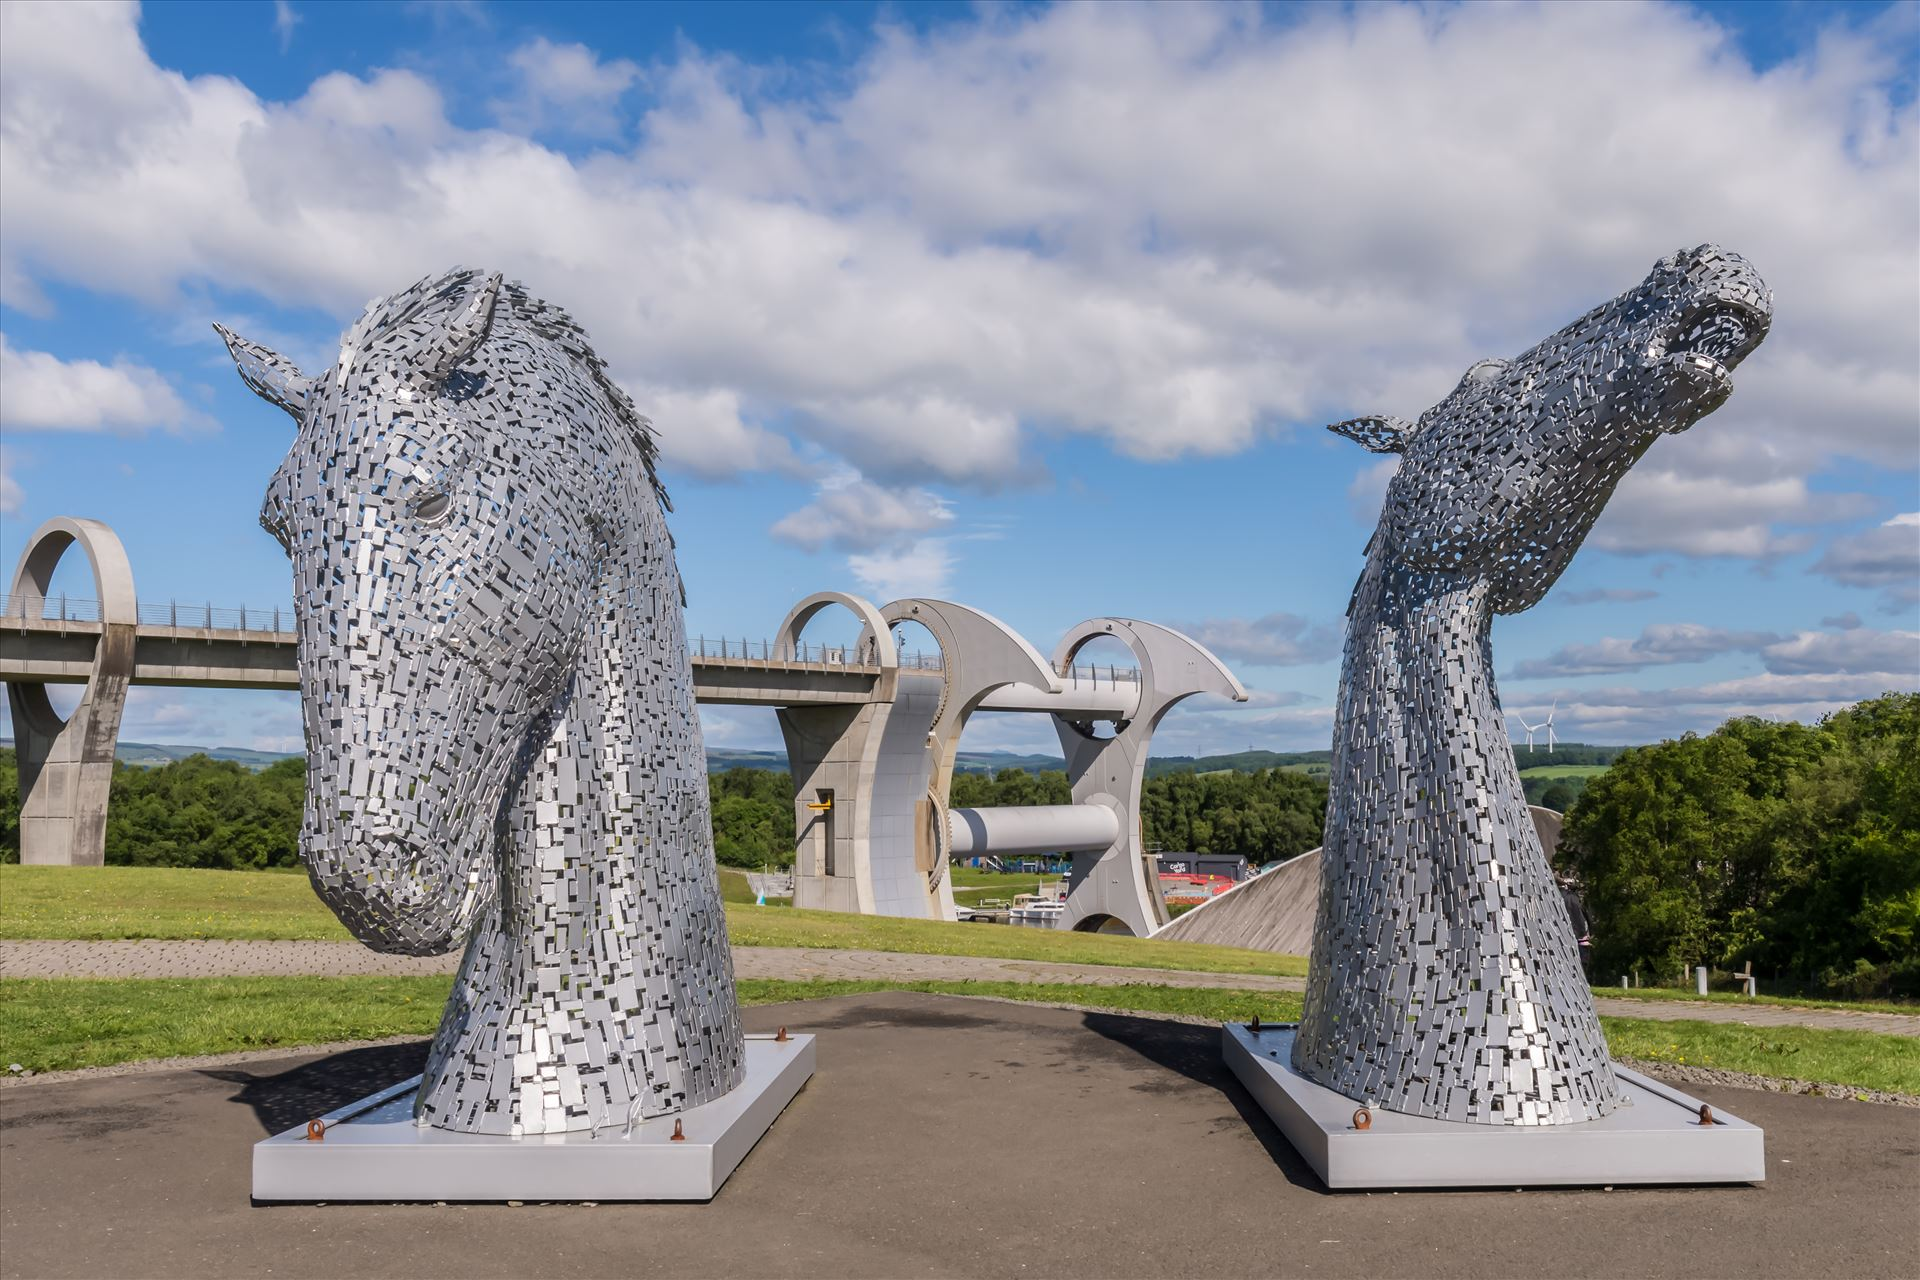 The Falkirk Wheel & miniature Kelpies The Falkirk Wheel is a rotating boat lift in Scotland, connecting the Forth and Clyde Canal with the Union Canal. It opened in 2002, reconnecting the two canals for the first time since the 1930s as part of the Millennium Link project. by philreay